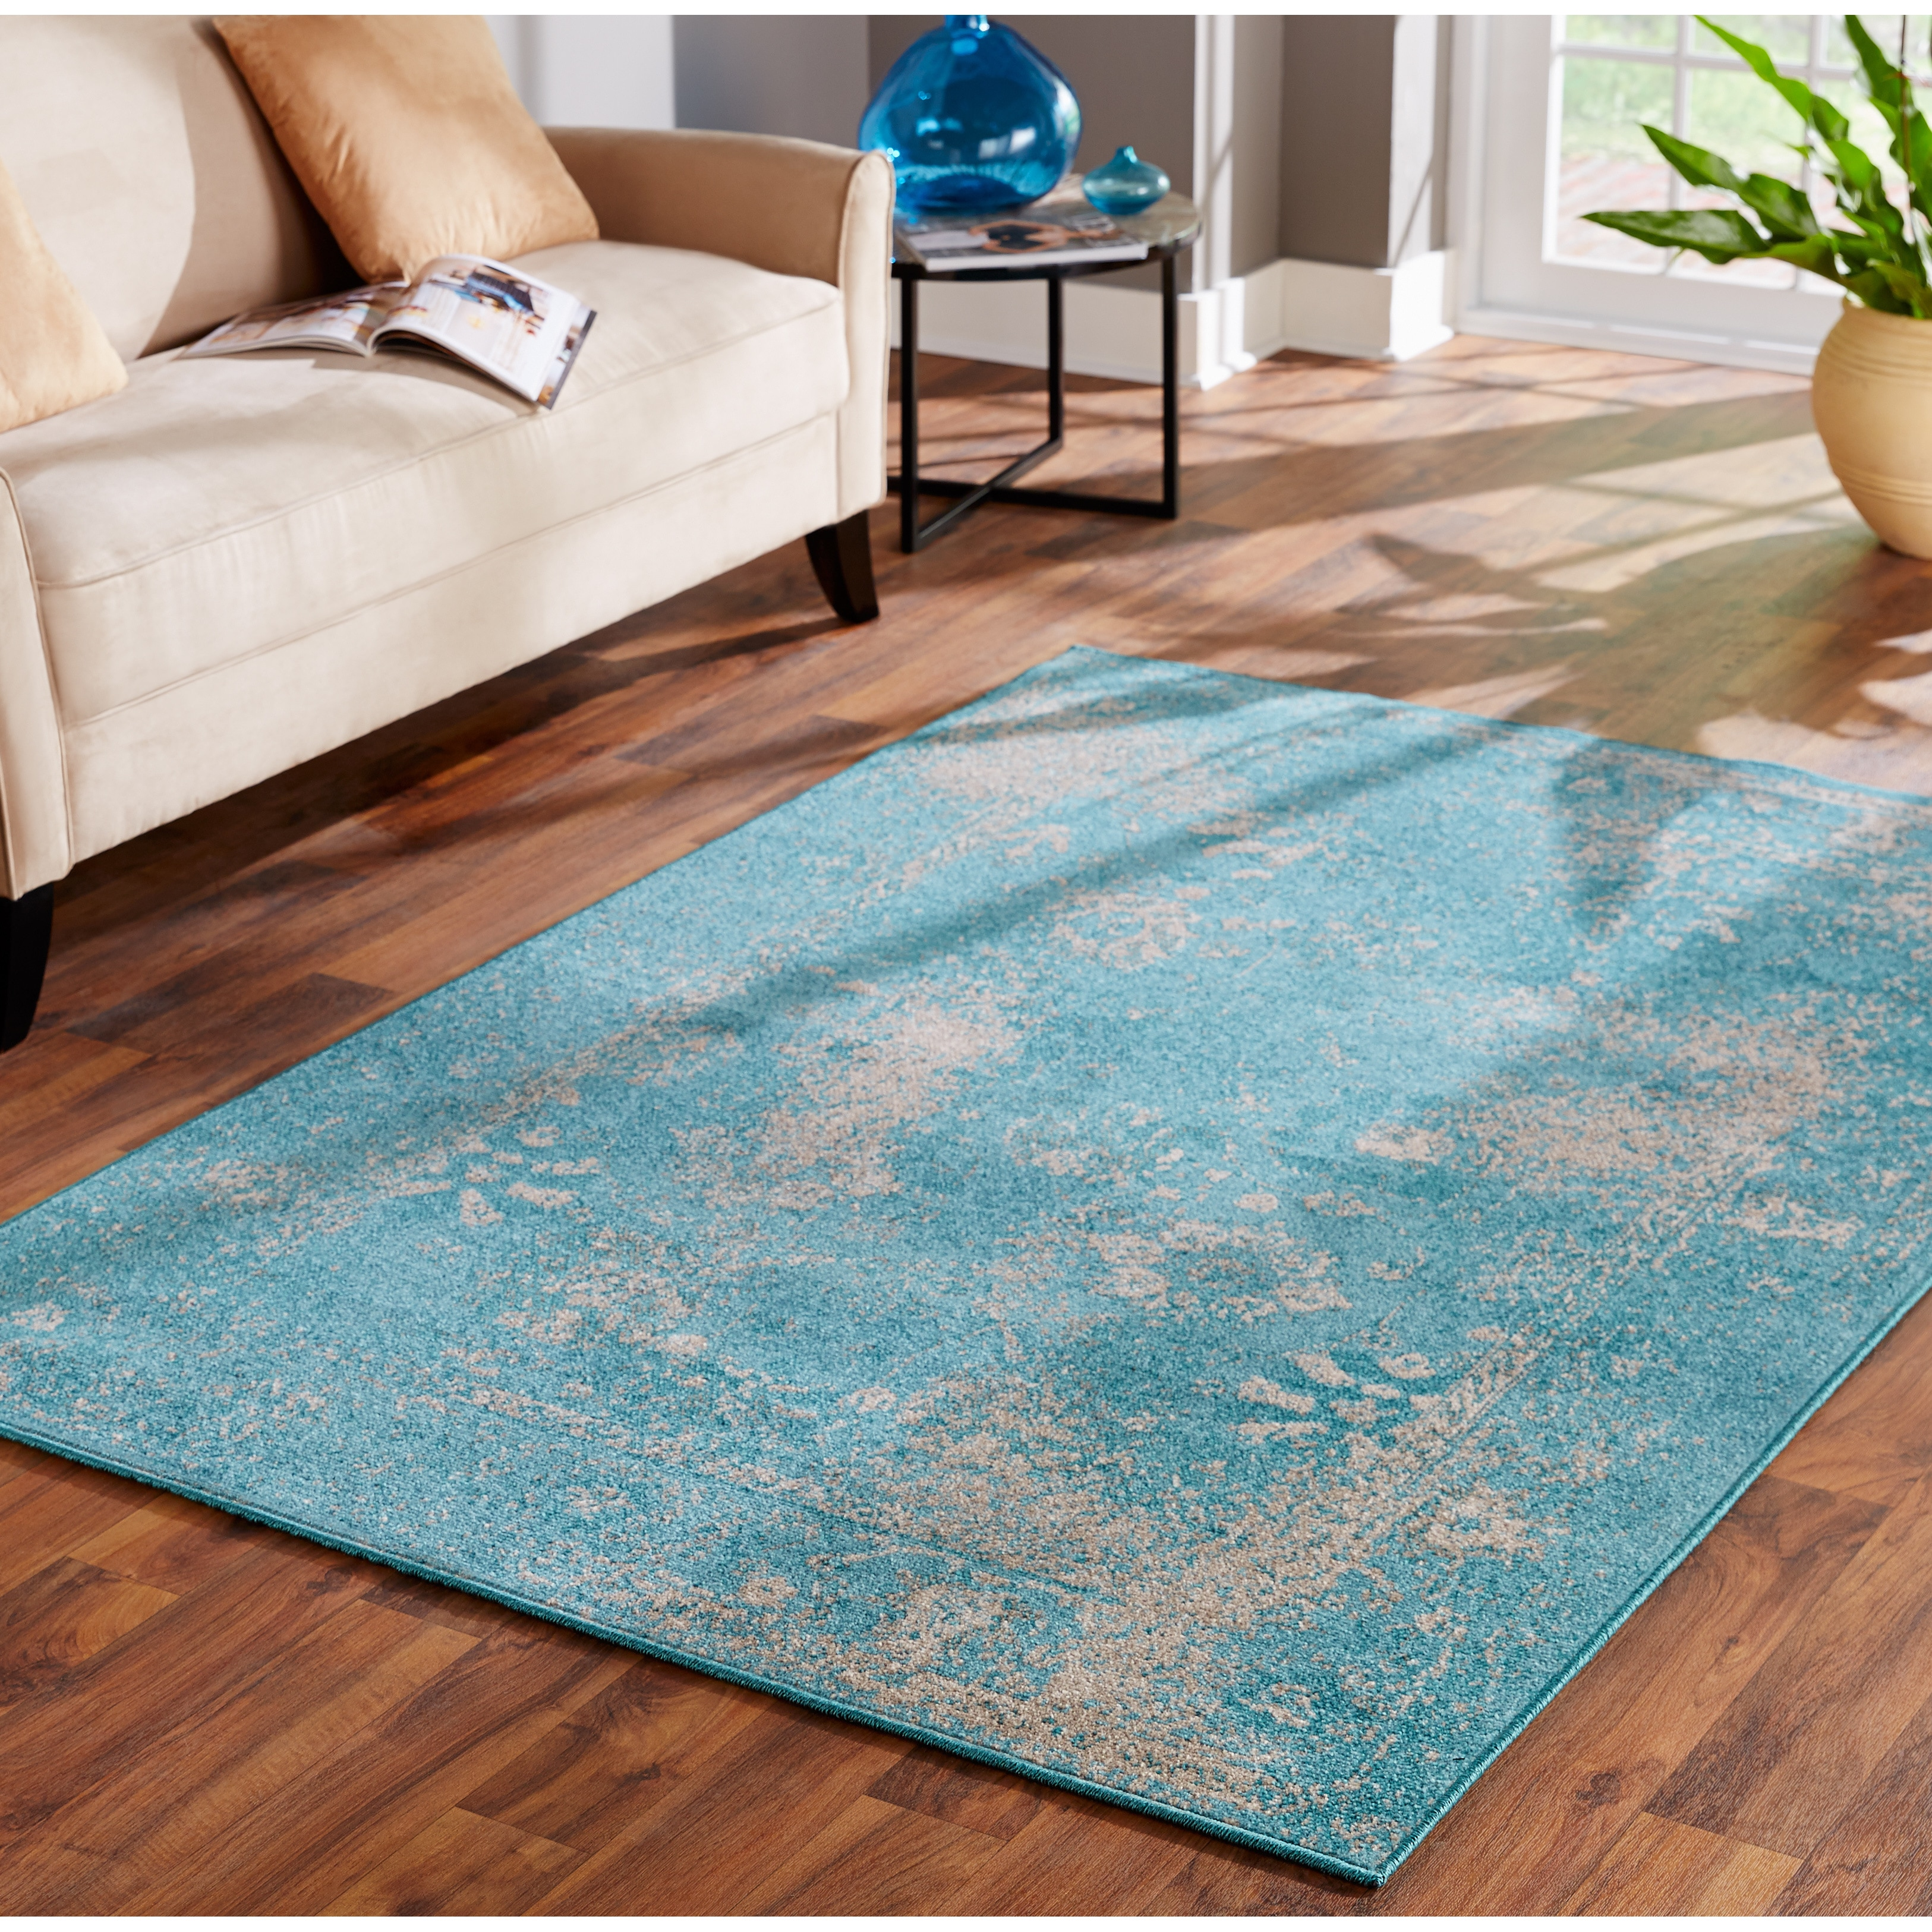 Shop Over dyed Distressed Traditional Teal Beige Area